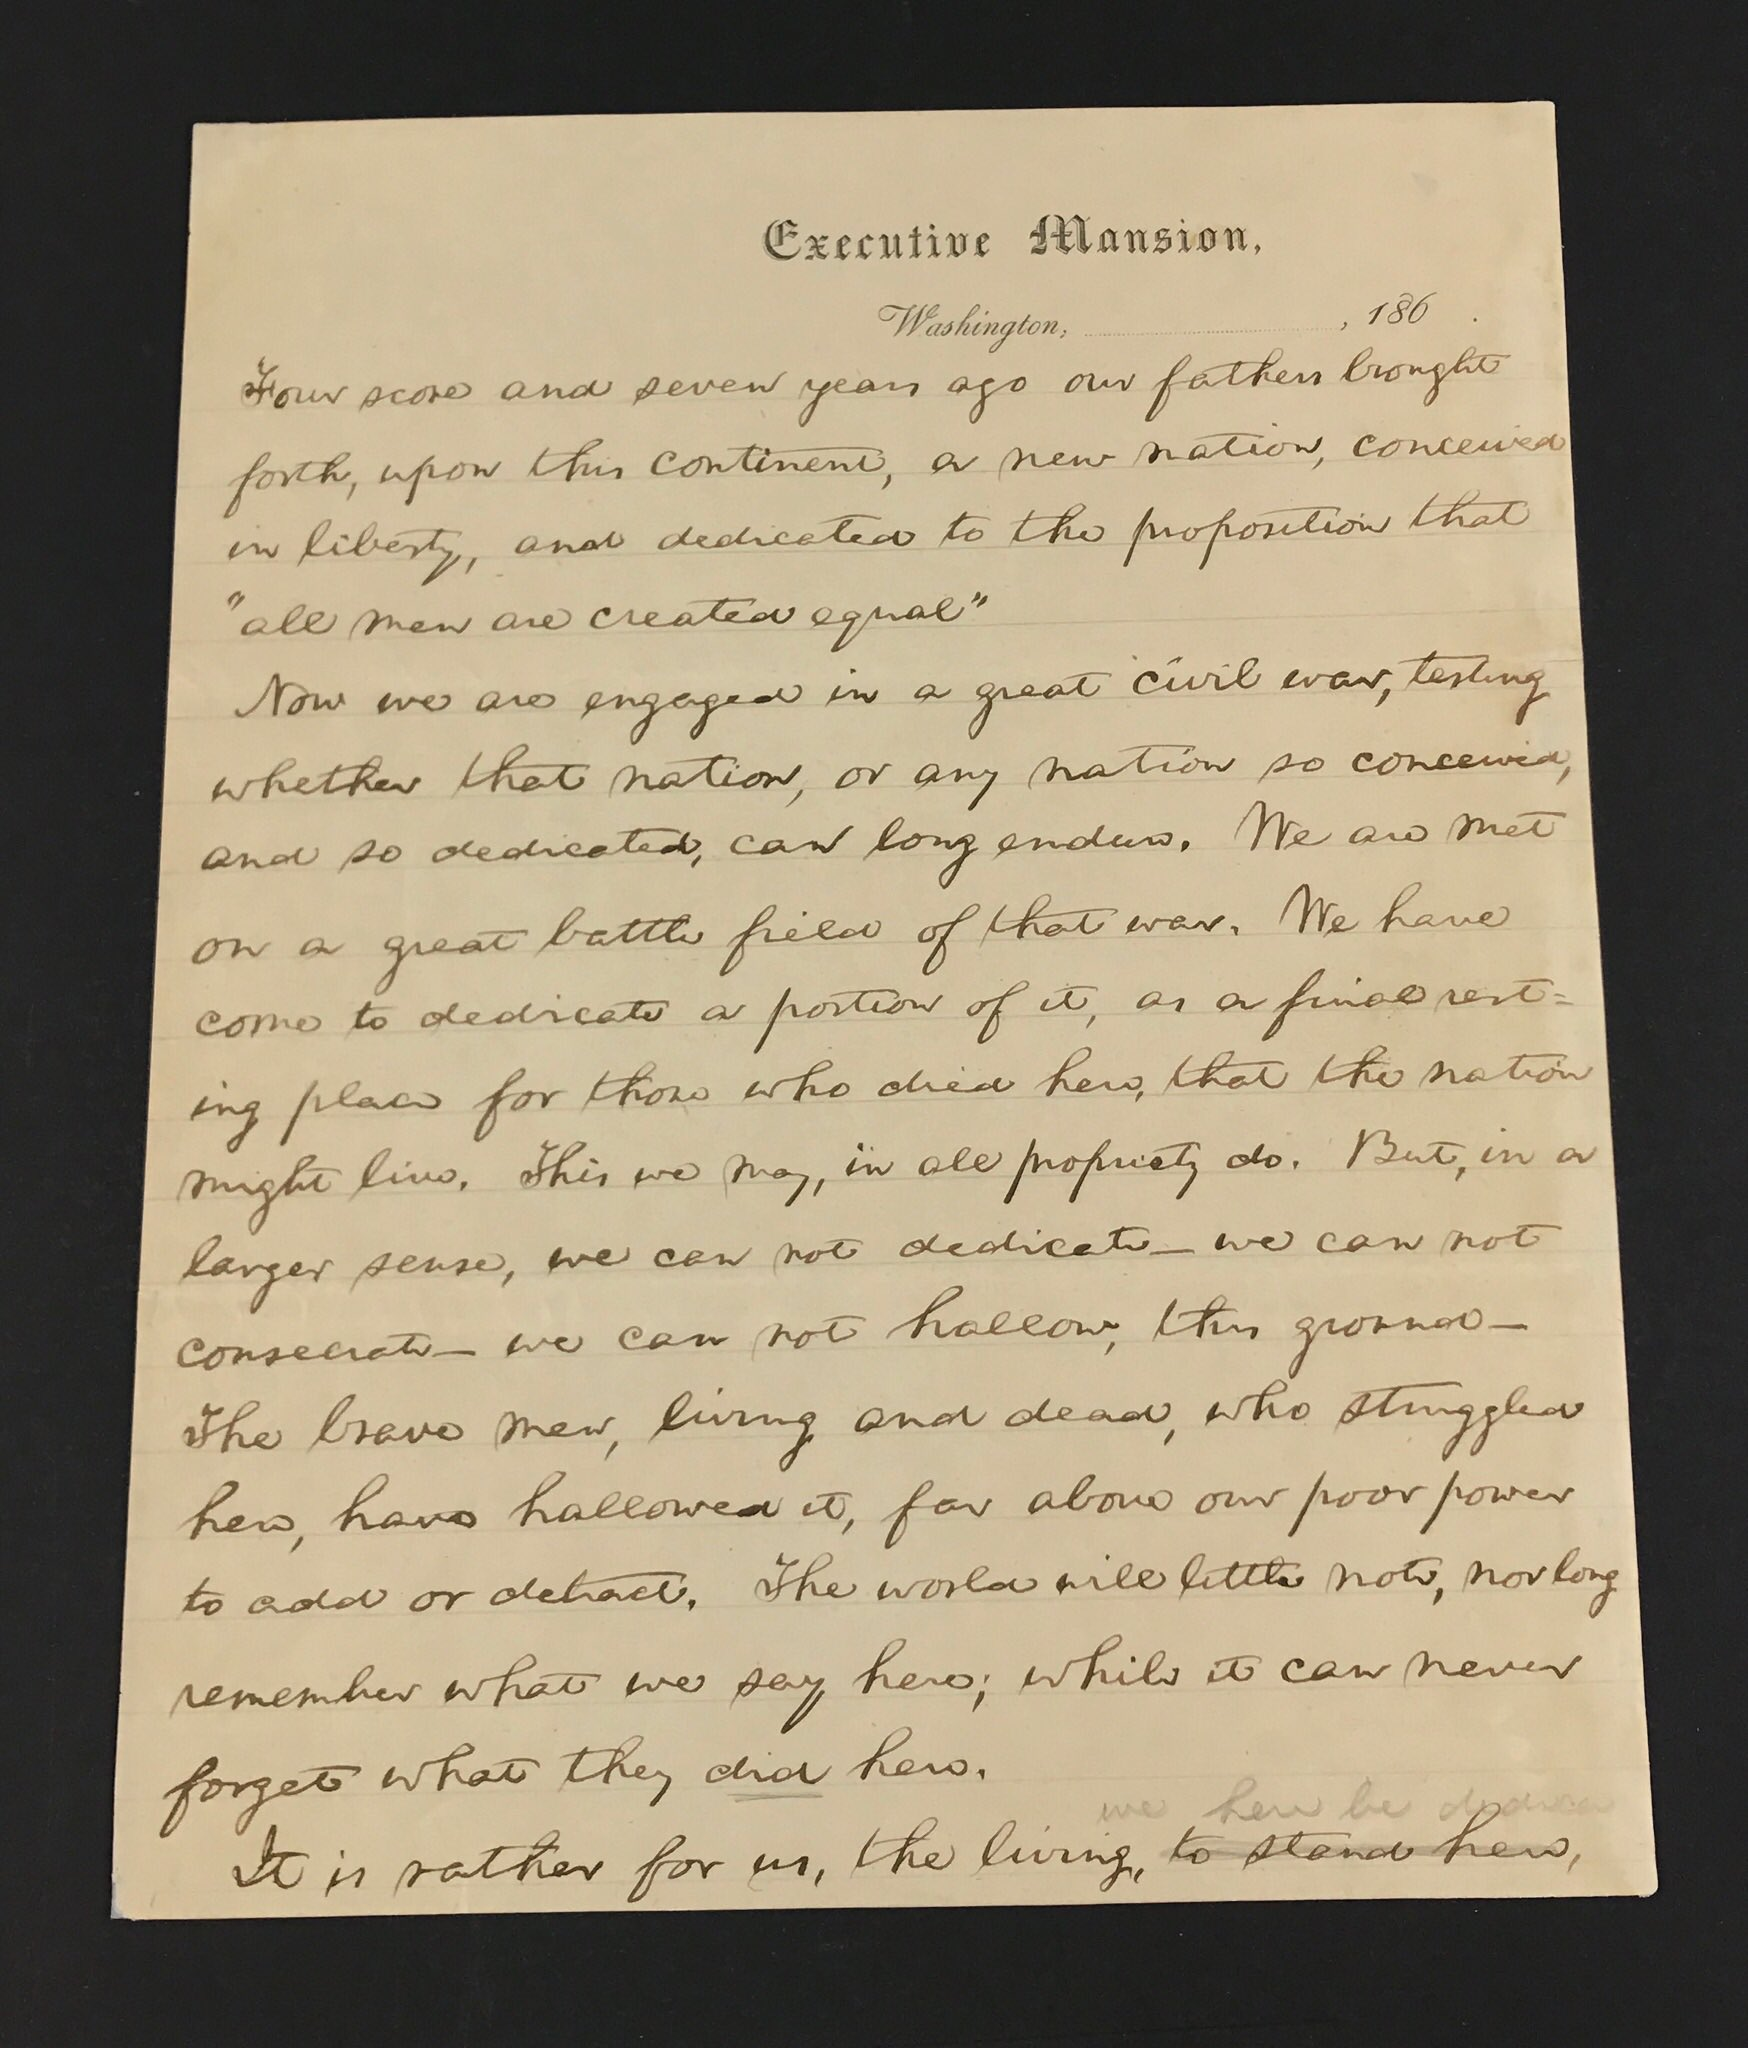 We're digitizing Lincoln's draft of the Gettysburg Address. Love sharing these treasures from America's Library. https://t.co/TsN42YcbhA